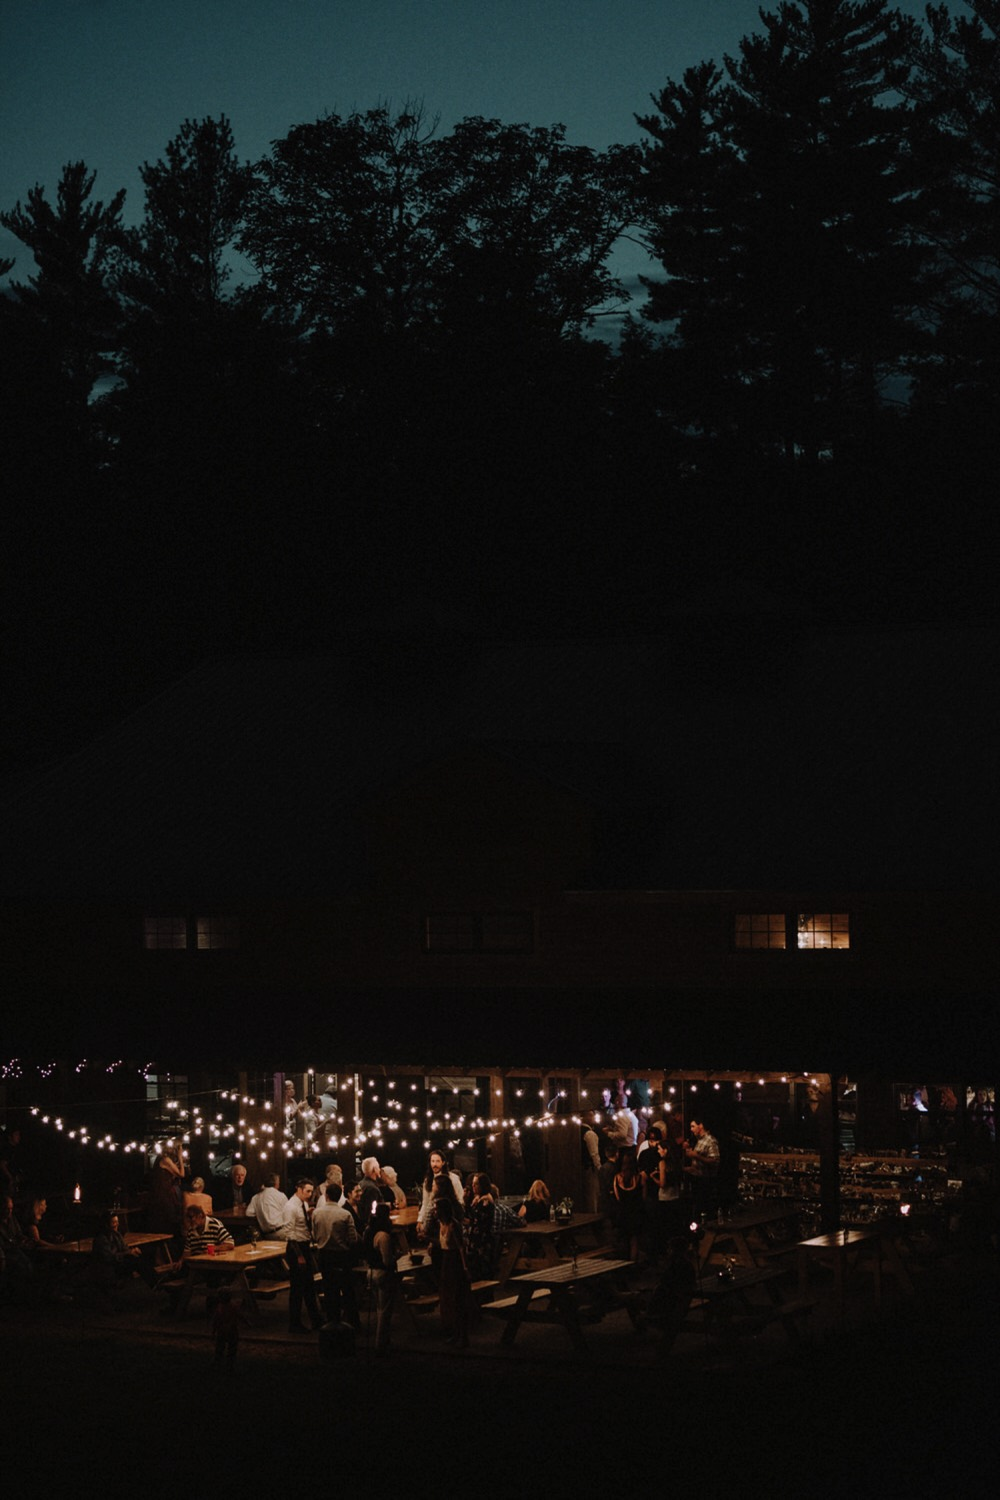 Campground Wedding Upstate New York0217.jpg